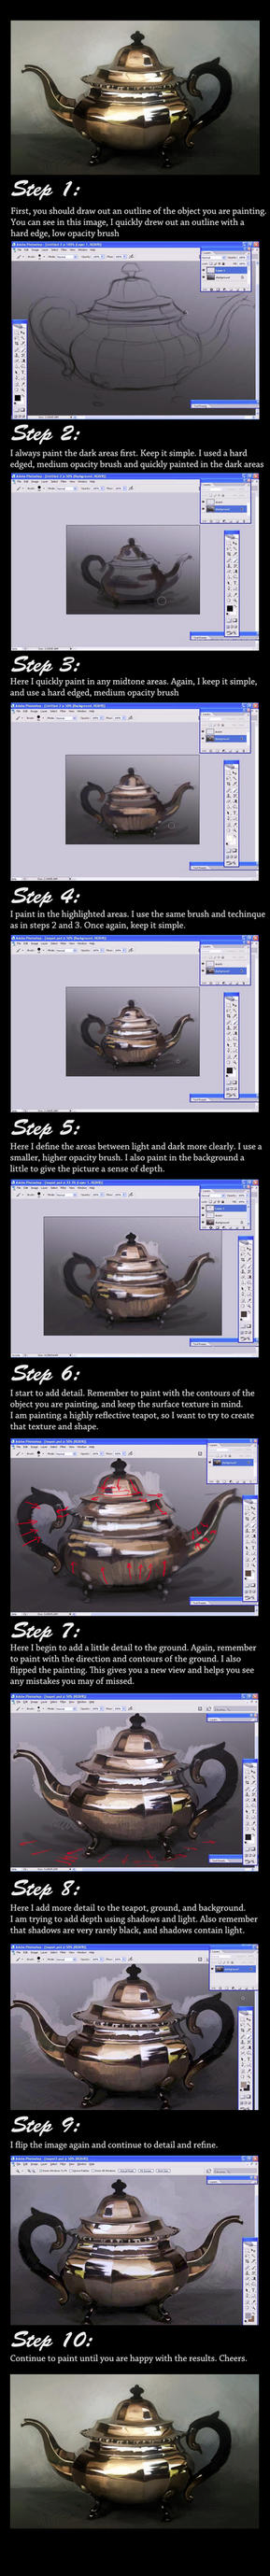 Painting a Teapot in Photoshop Tutorial by chewymonkey